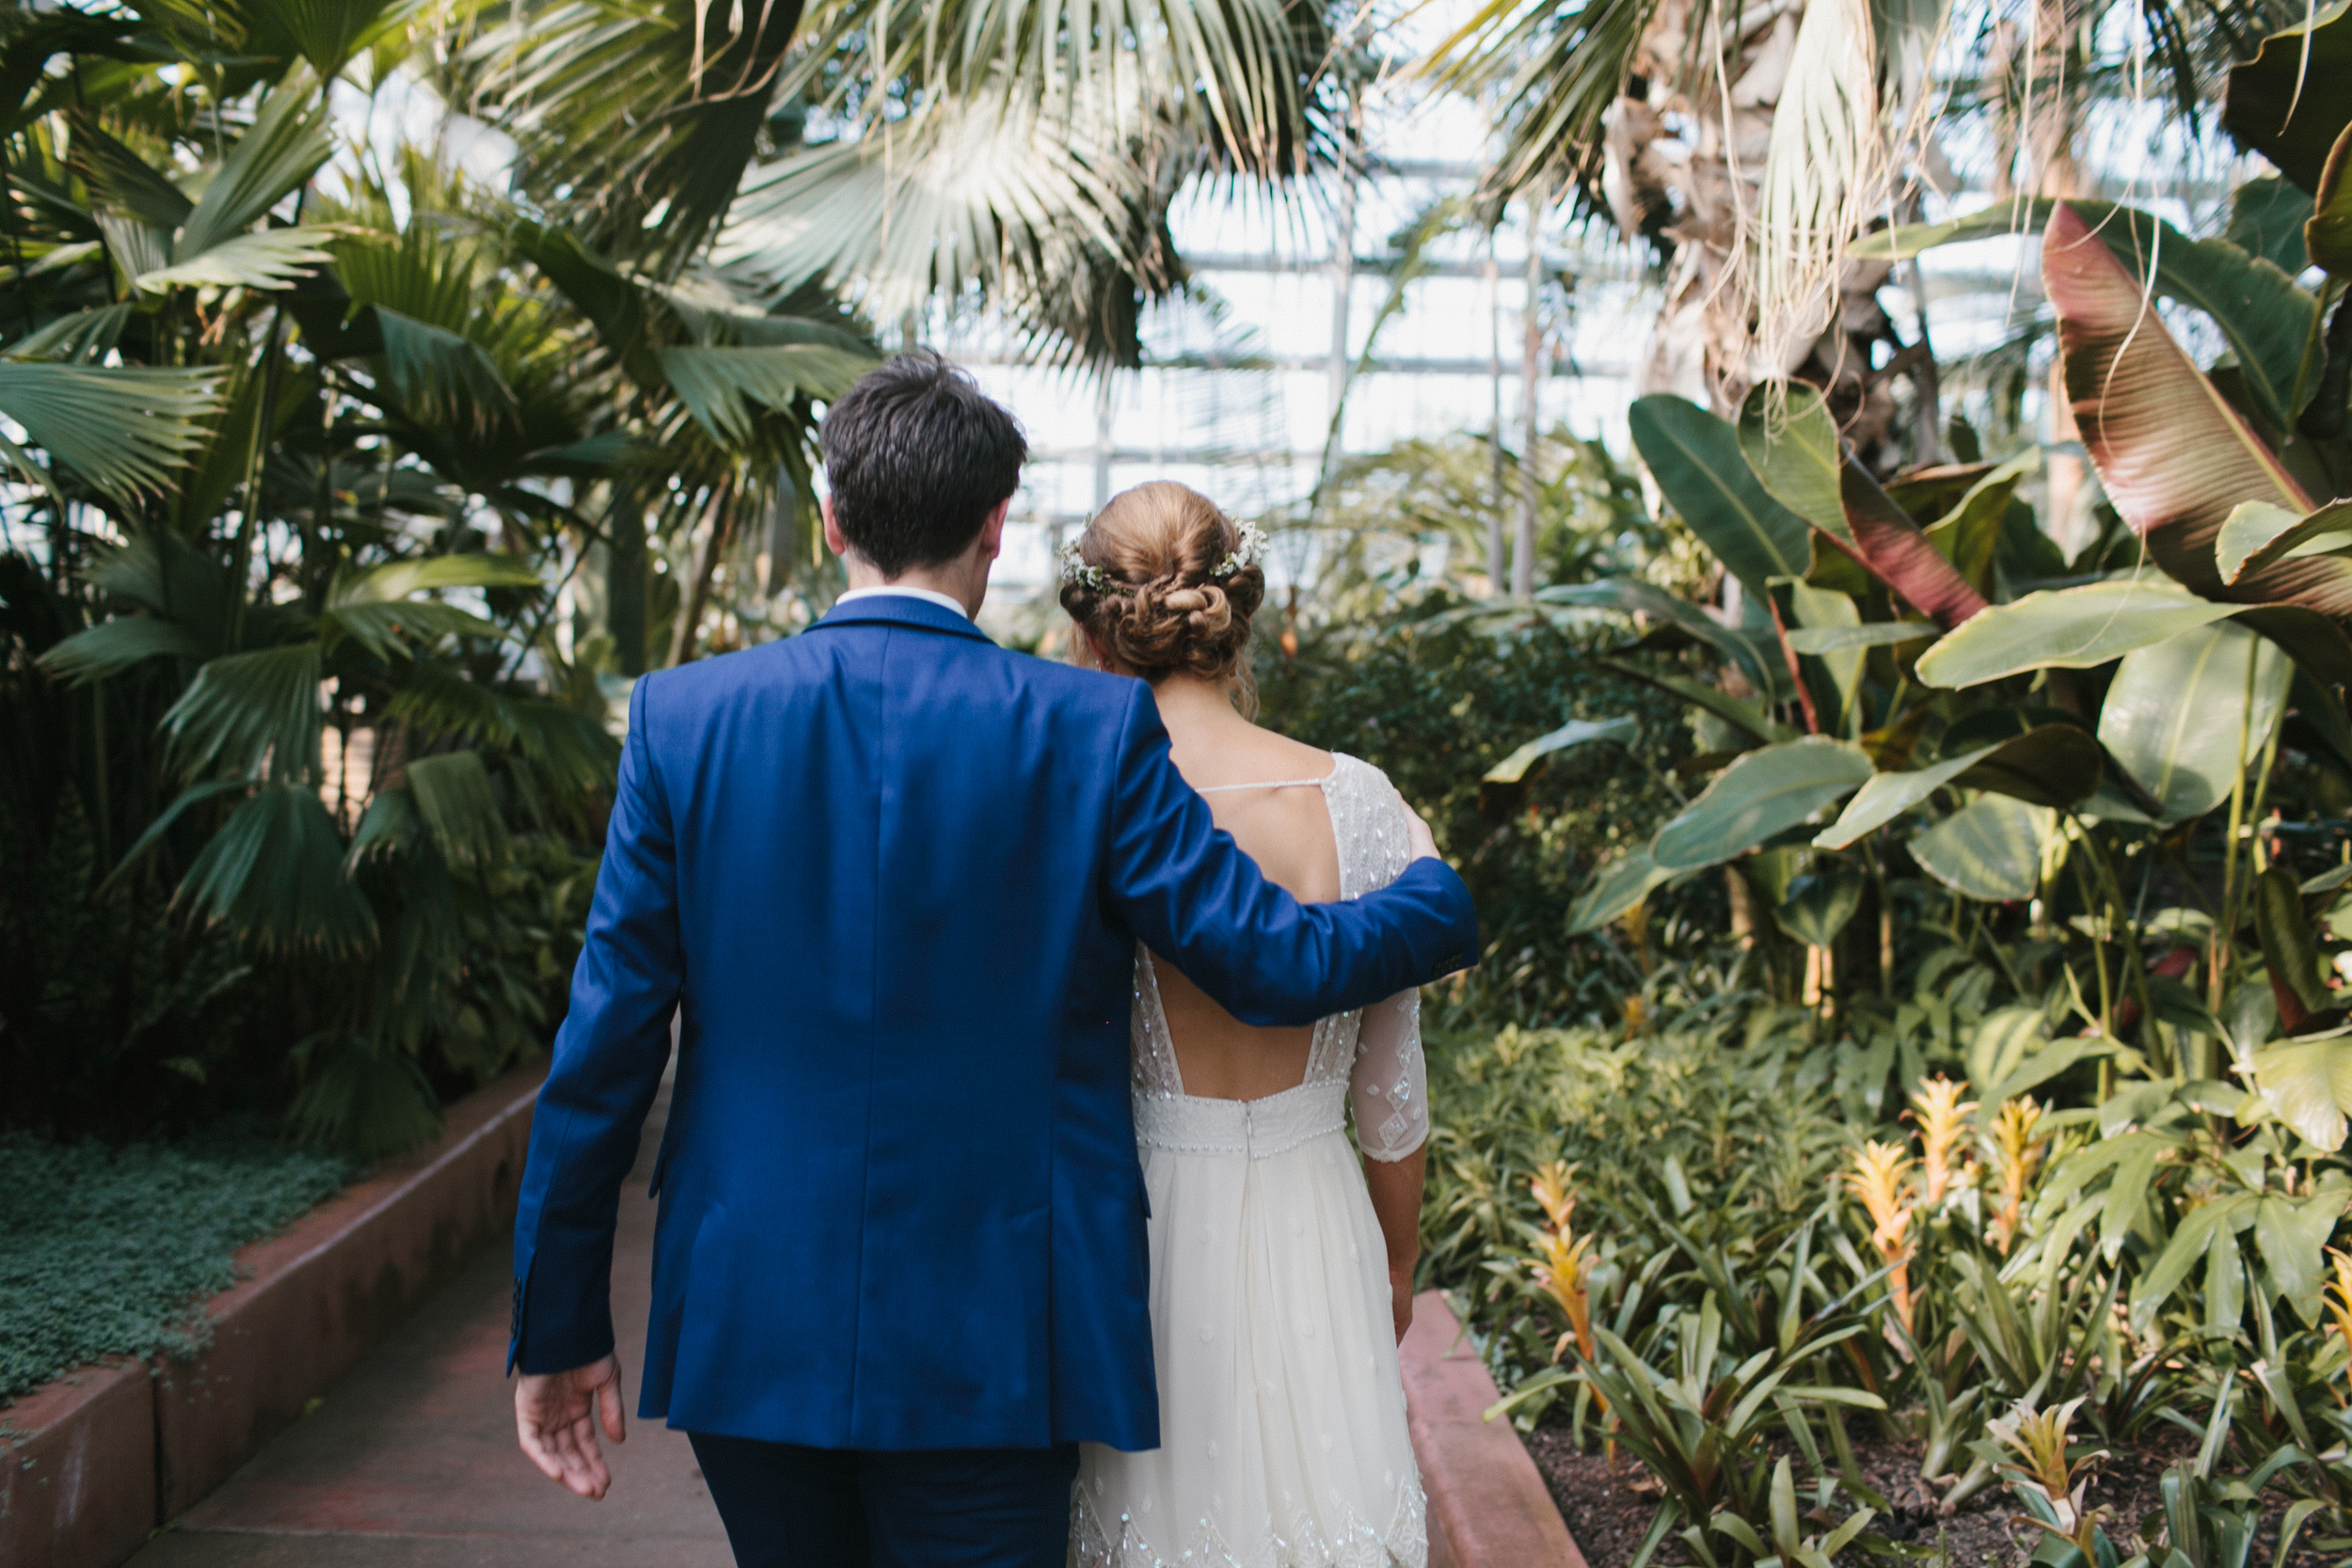 Chicago Wedding Garfield Park Conservatory Mae Stier Wedding Photographer Lifestyle Photography Midwest California-035.jpg